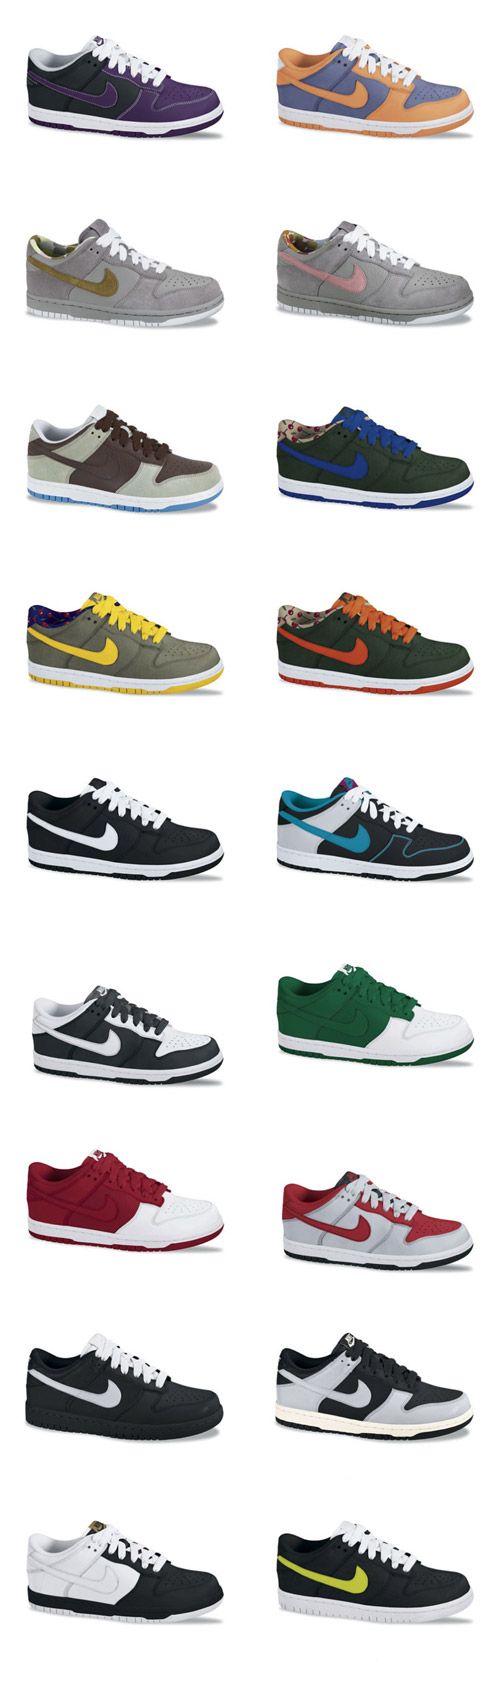 nike-dunk-preview-09-01